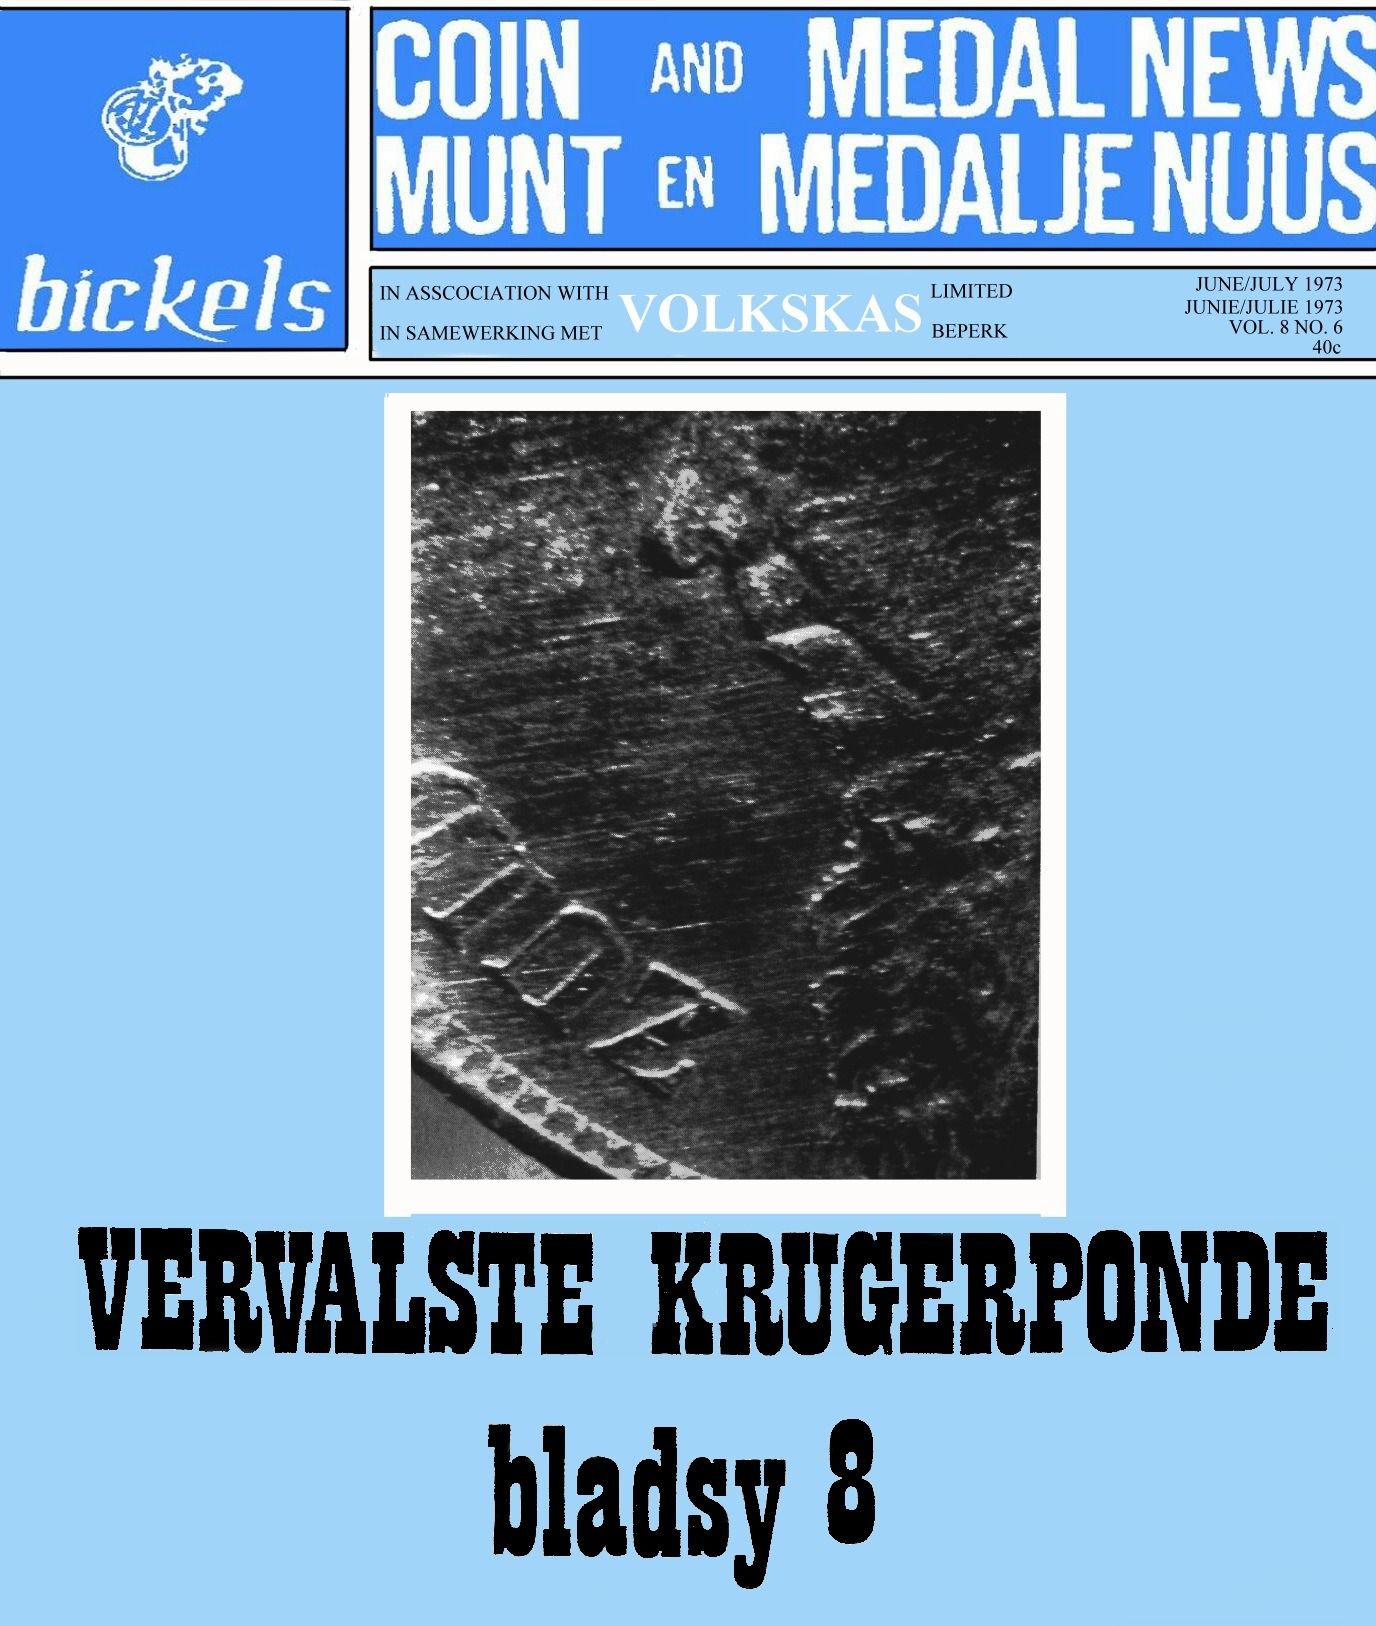 Bickels Coin & Medal News June July Vol 8 No 6